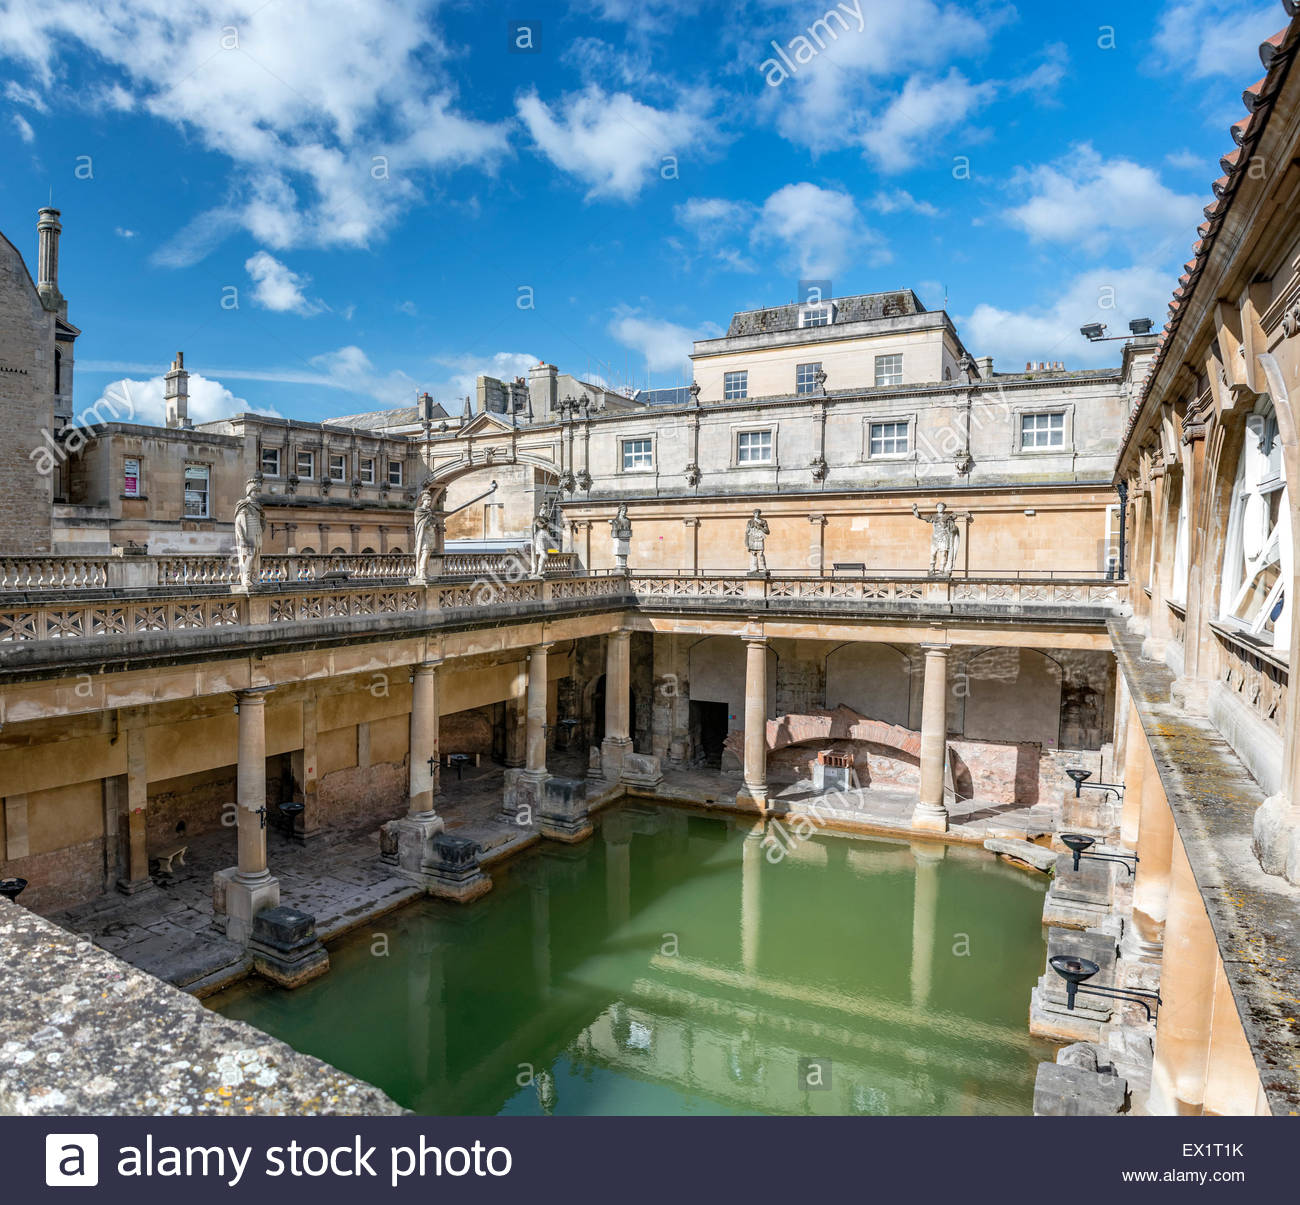 The Roman Baths complex, a site of historical interest in the English city of Bath, Somerset, England. - Stock Image